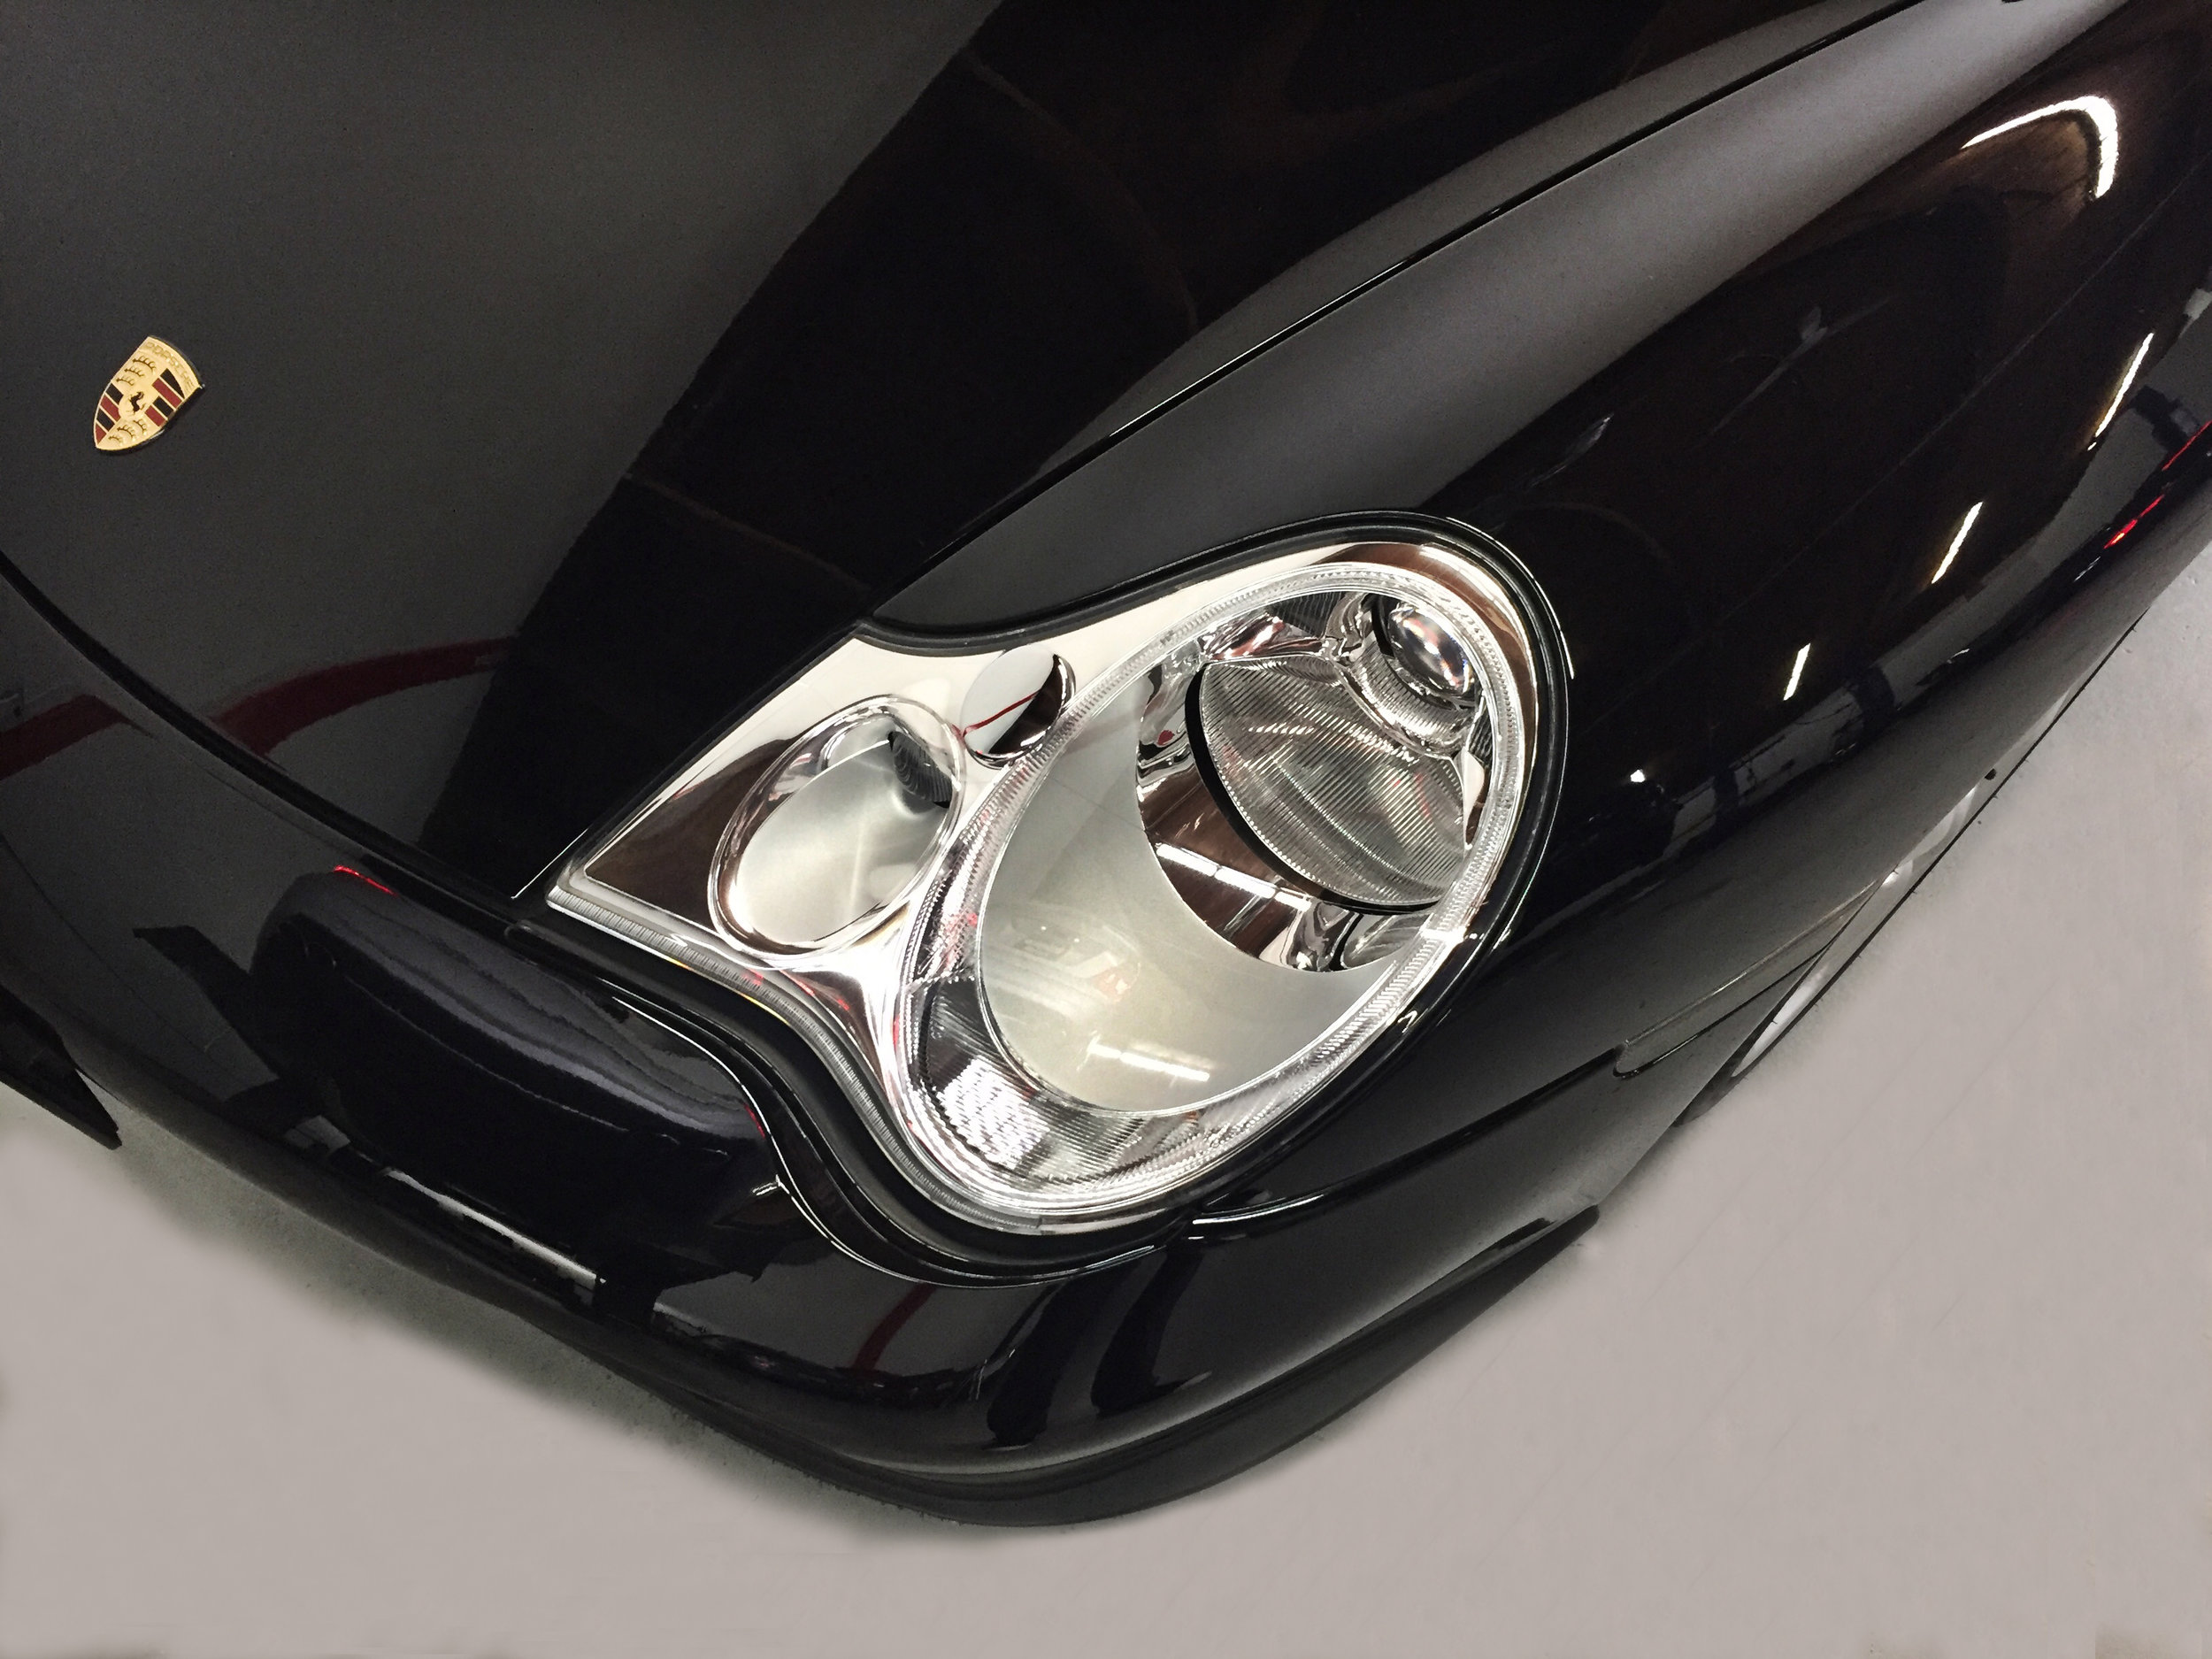 Botta Moto Works Porsche 996 Turbo Cab headlight.jpg